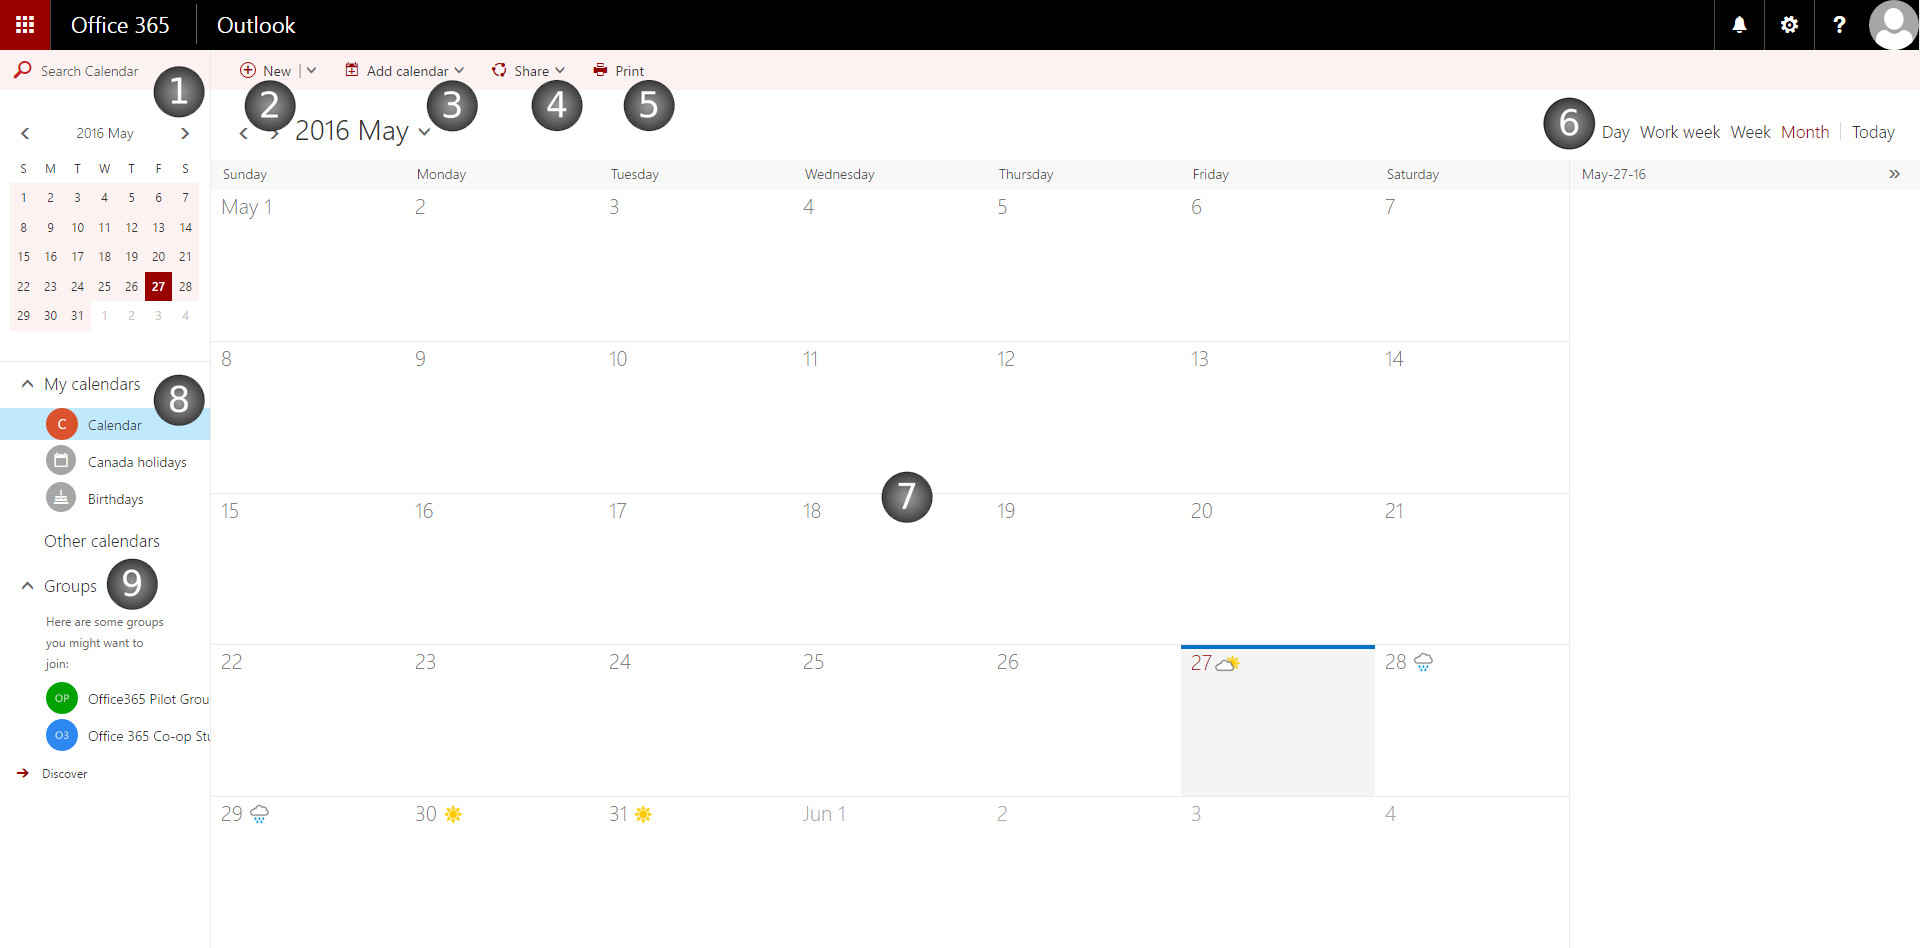 Layout of the Calendar App in the Outlook Web App